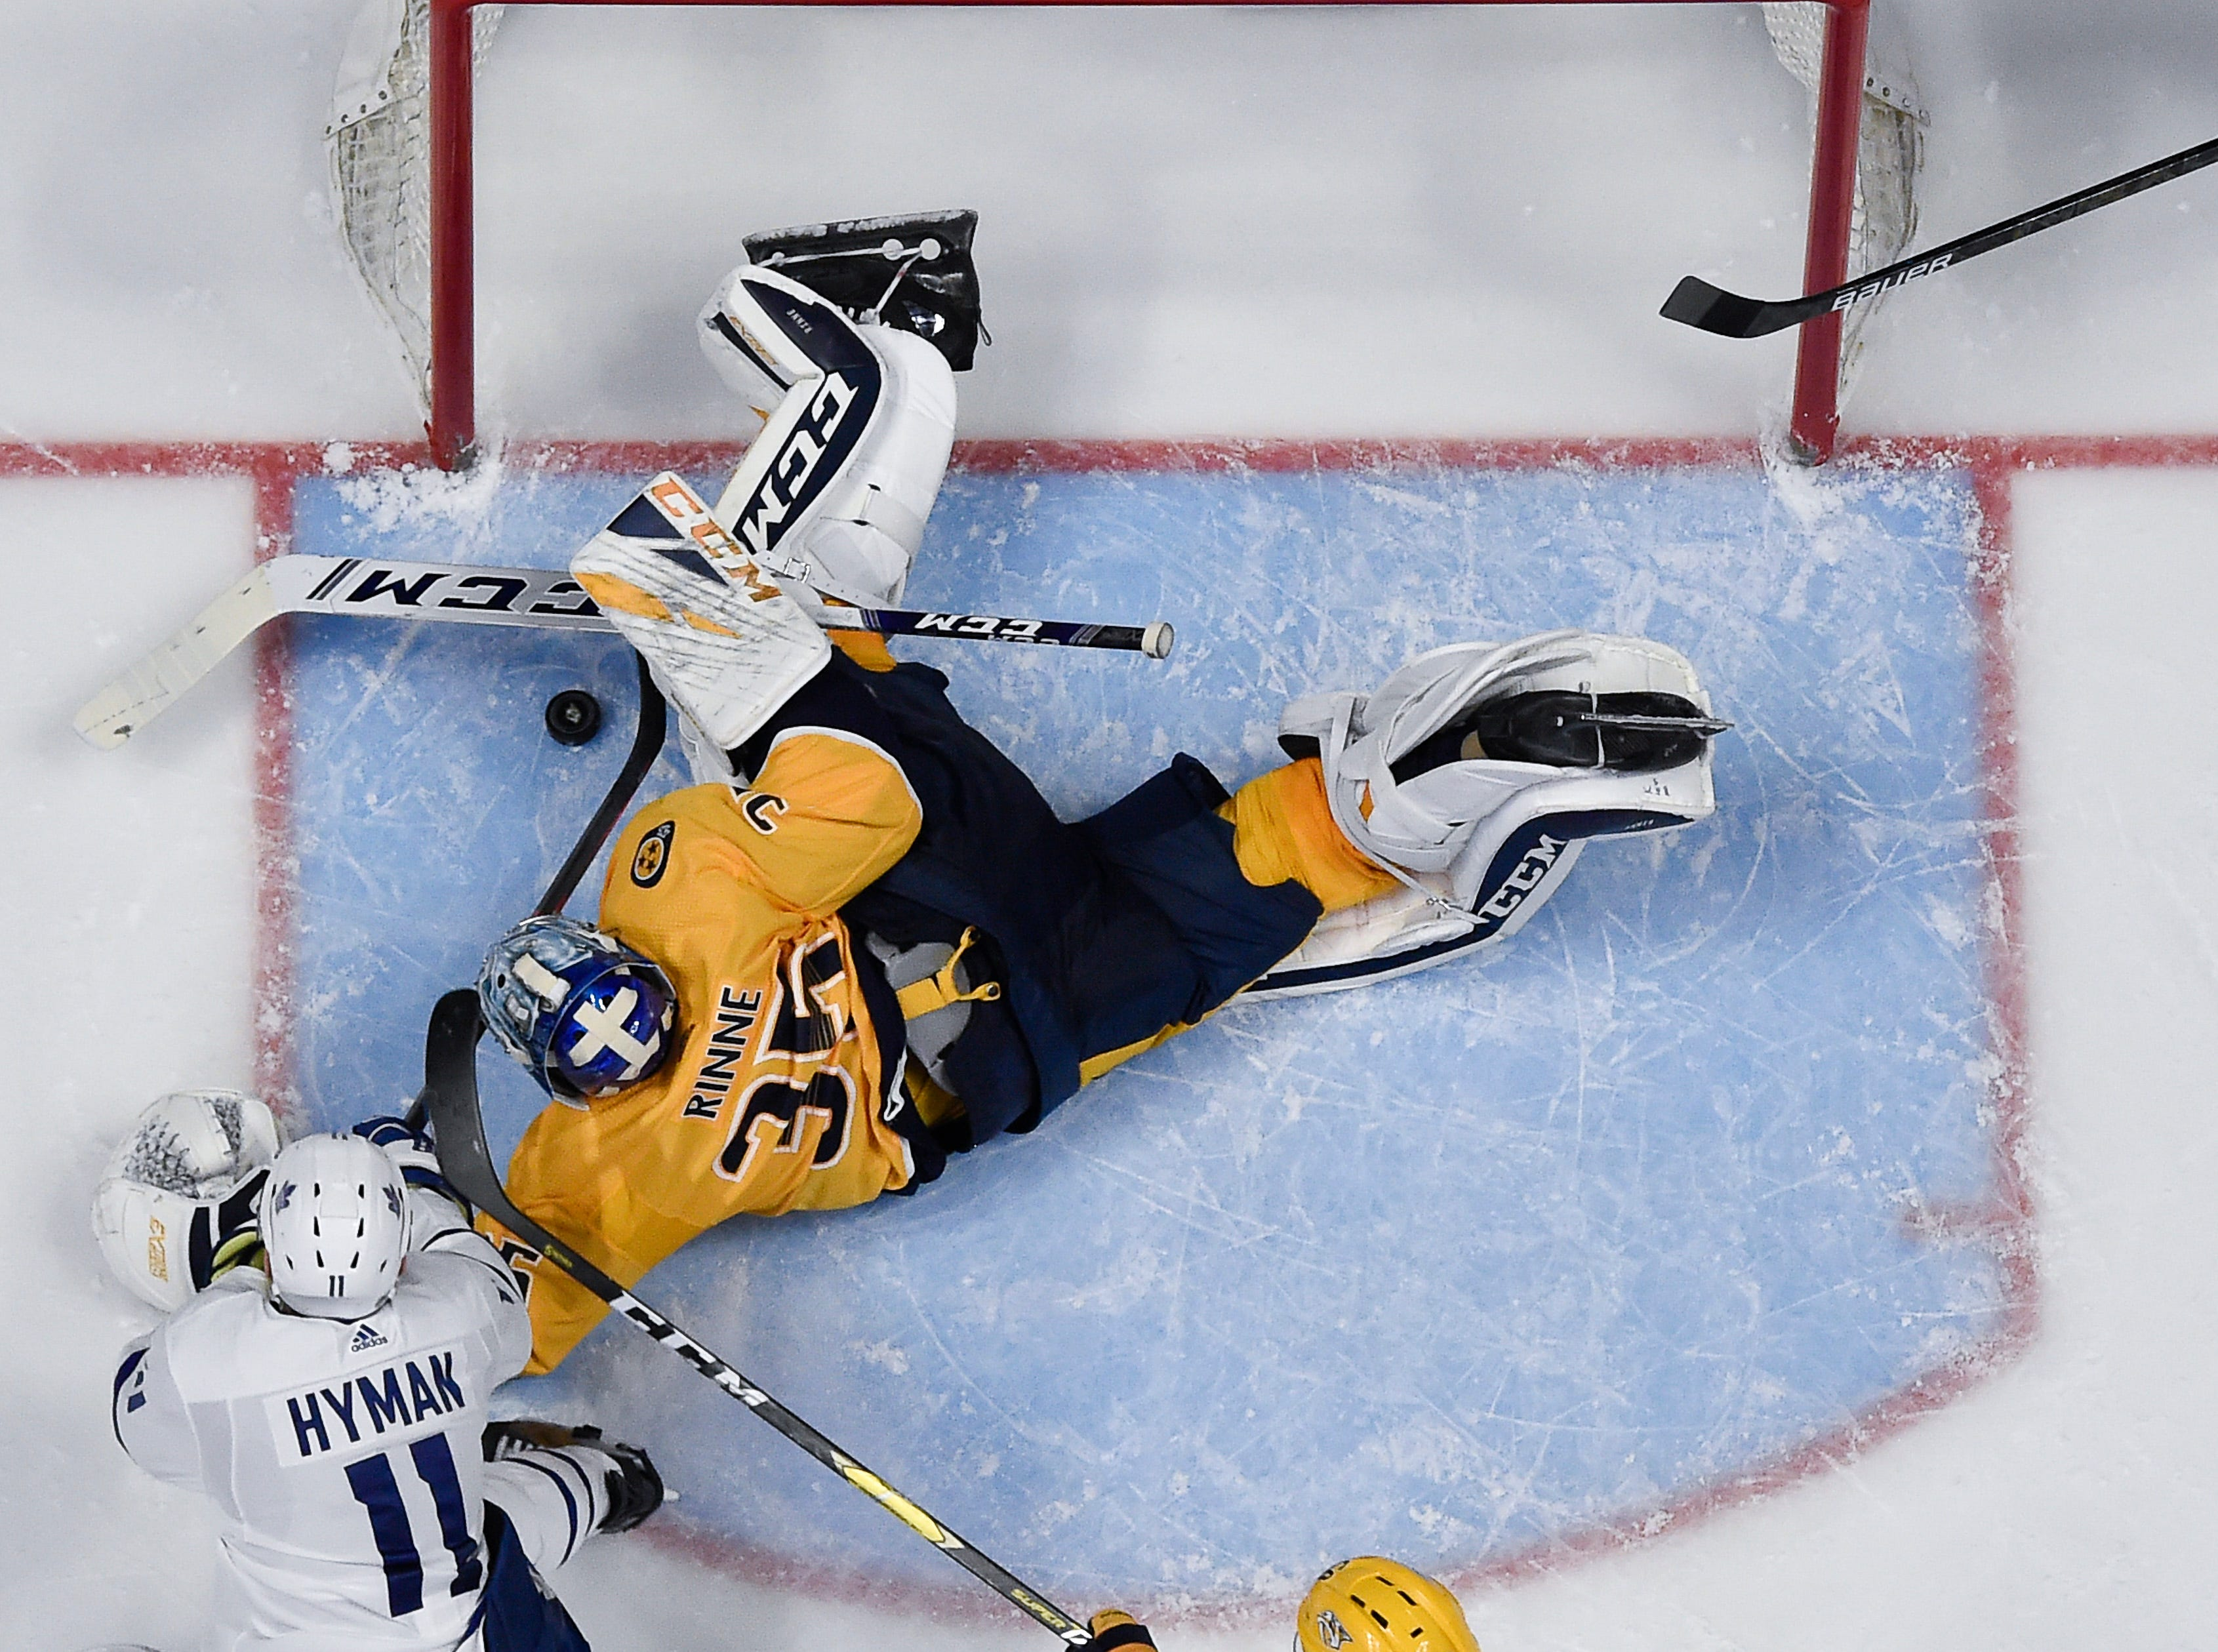 Predators goaltender Pekka Rinne (35) defend the puck against Maple Leafs left wing Zach Hyman (11) during the third period at Bridgestone Arena Tuesday, March 19, 2019 in Nashville, Tenn.